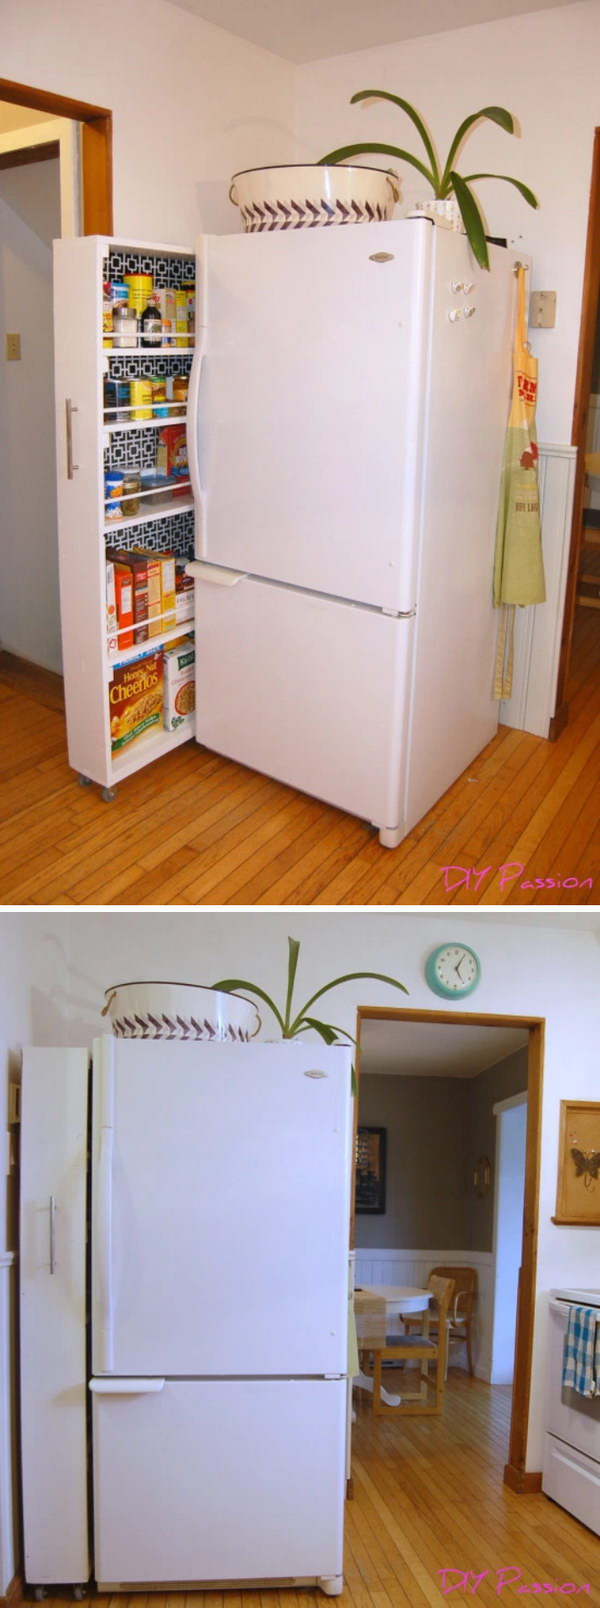 Life hacks for living large in small spaces house good for Small space living hacks